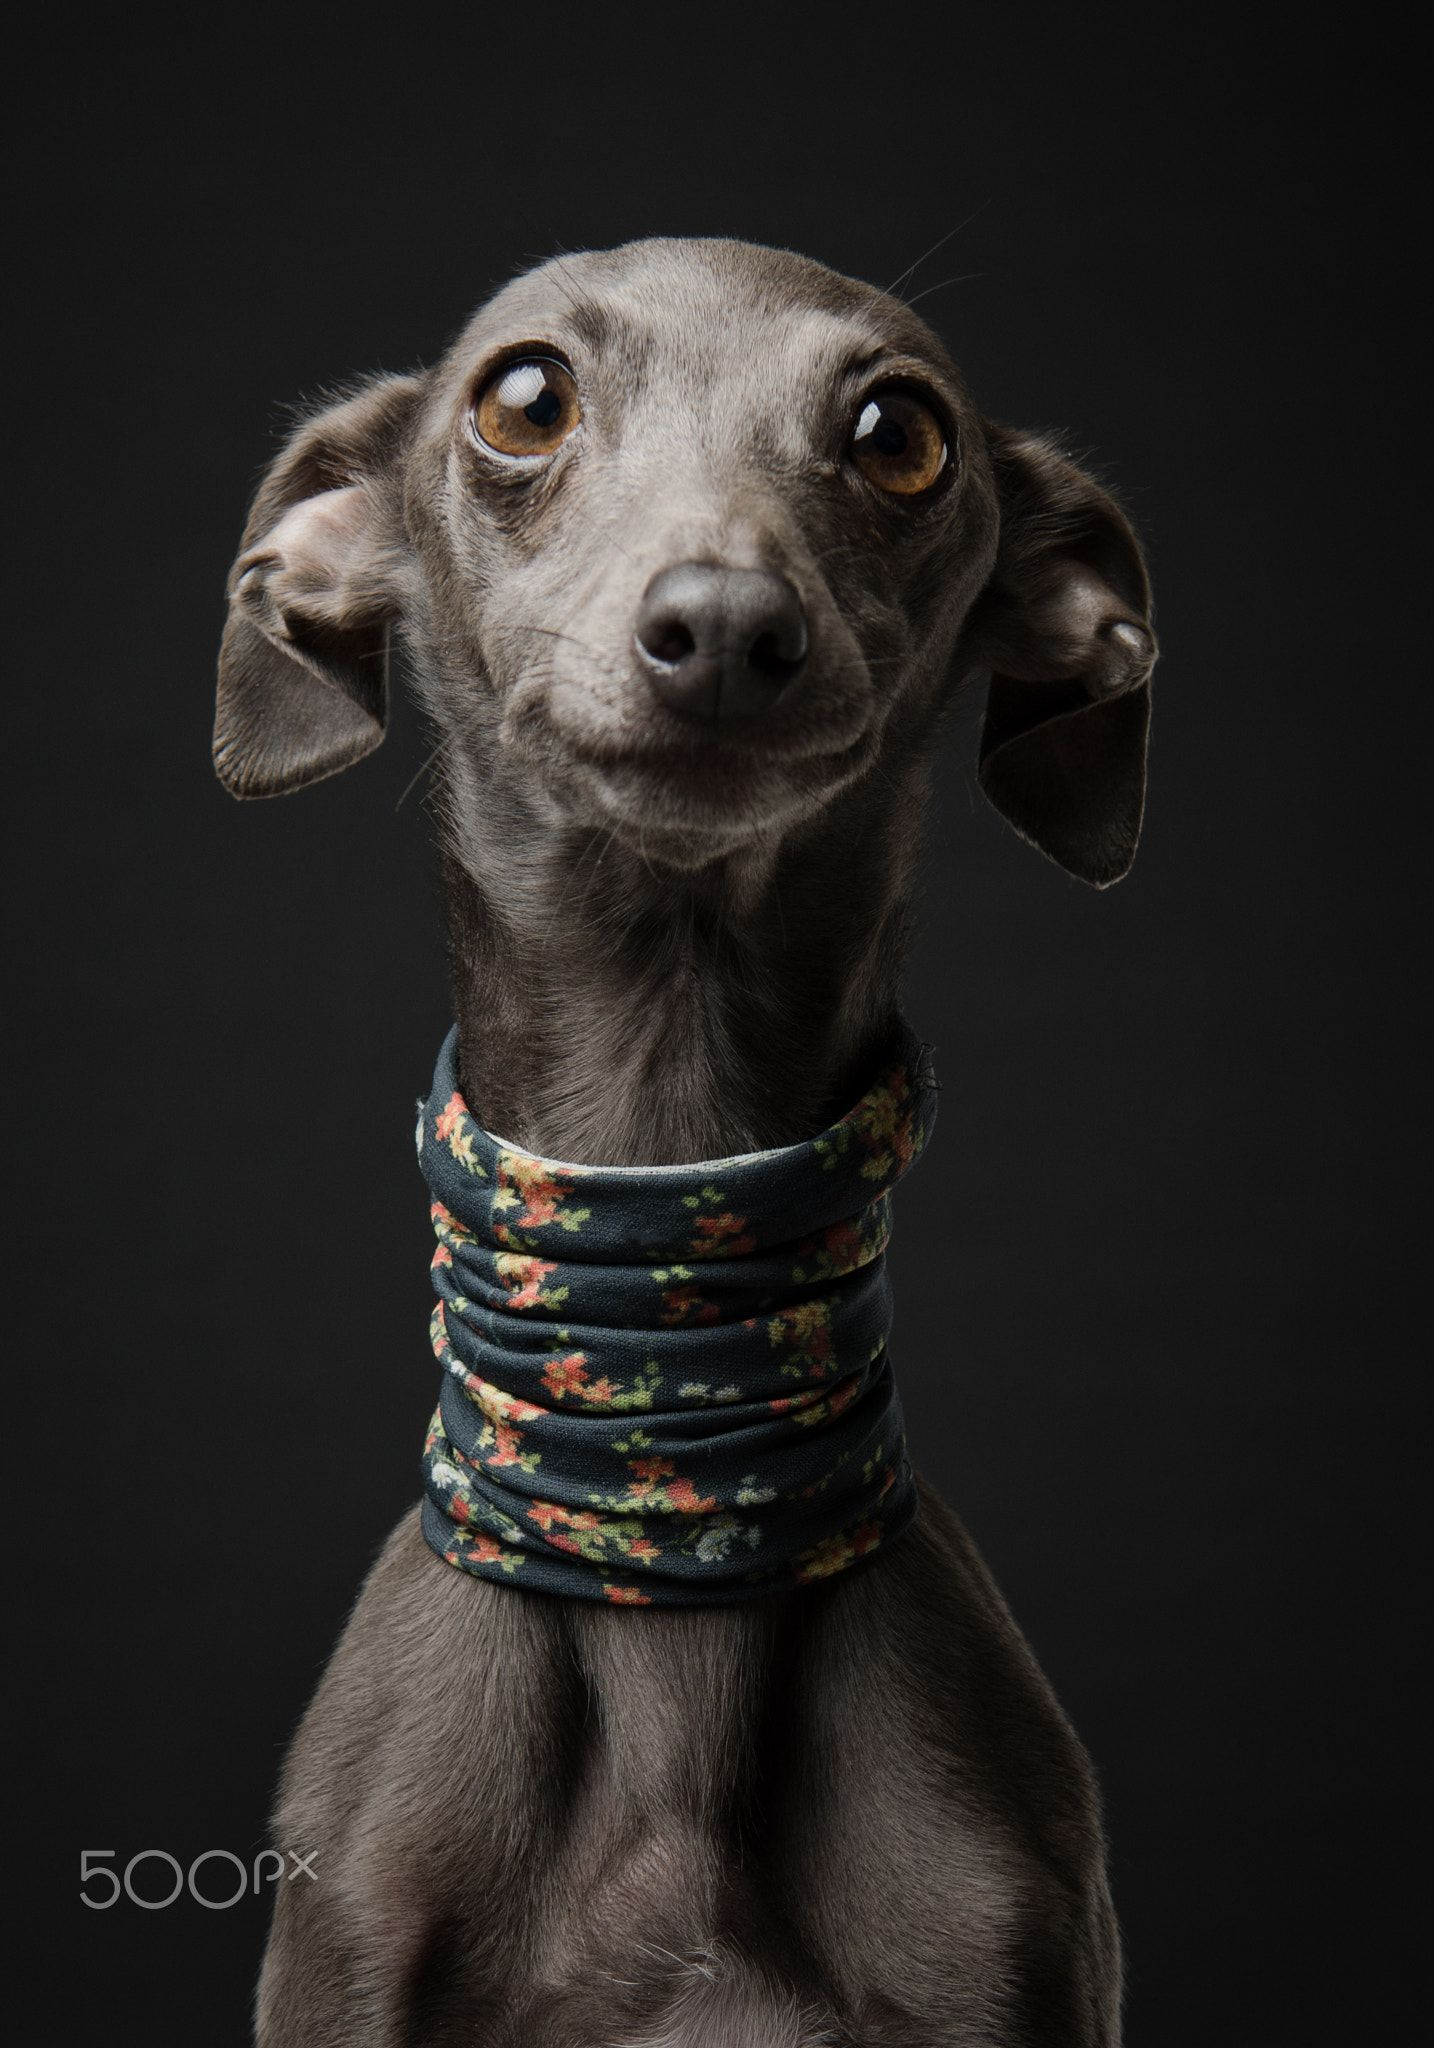 Adi Adi An Italian Greyhound Whippets Are Good For Both Homes With Yards And Apartments Bew Italian Greyhound Dog Greyhound Puppy Italian Greyhound Puppies